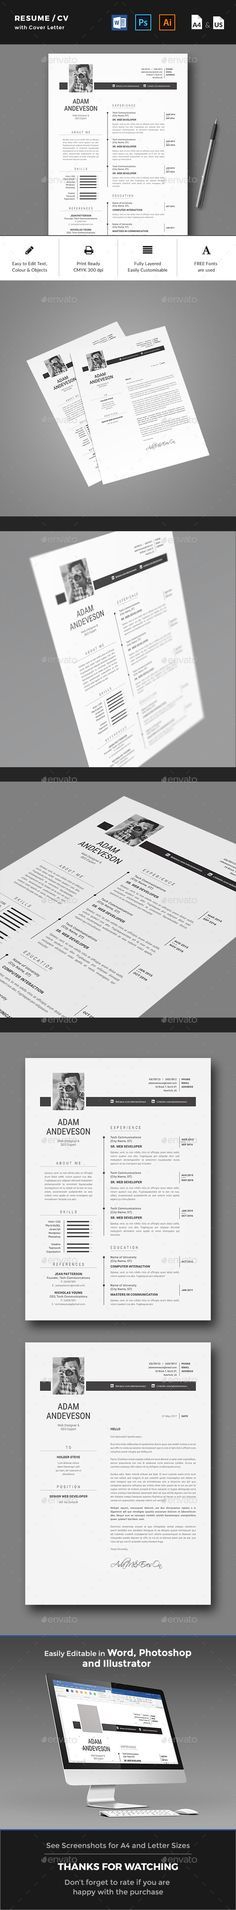 Free Minimal and Clean Resume Template Free PSD Files - clean resume design